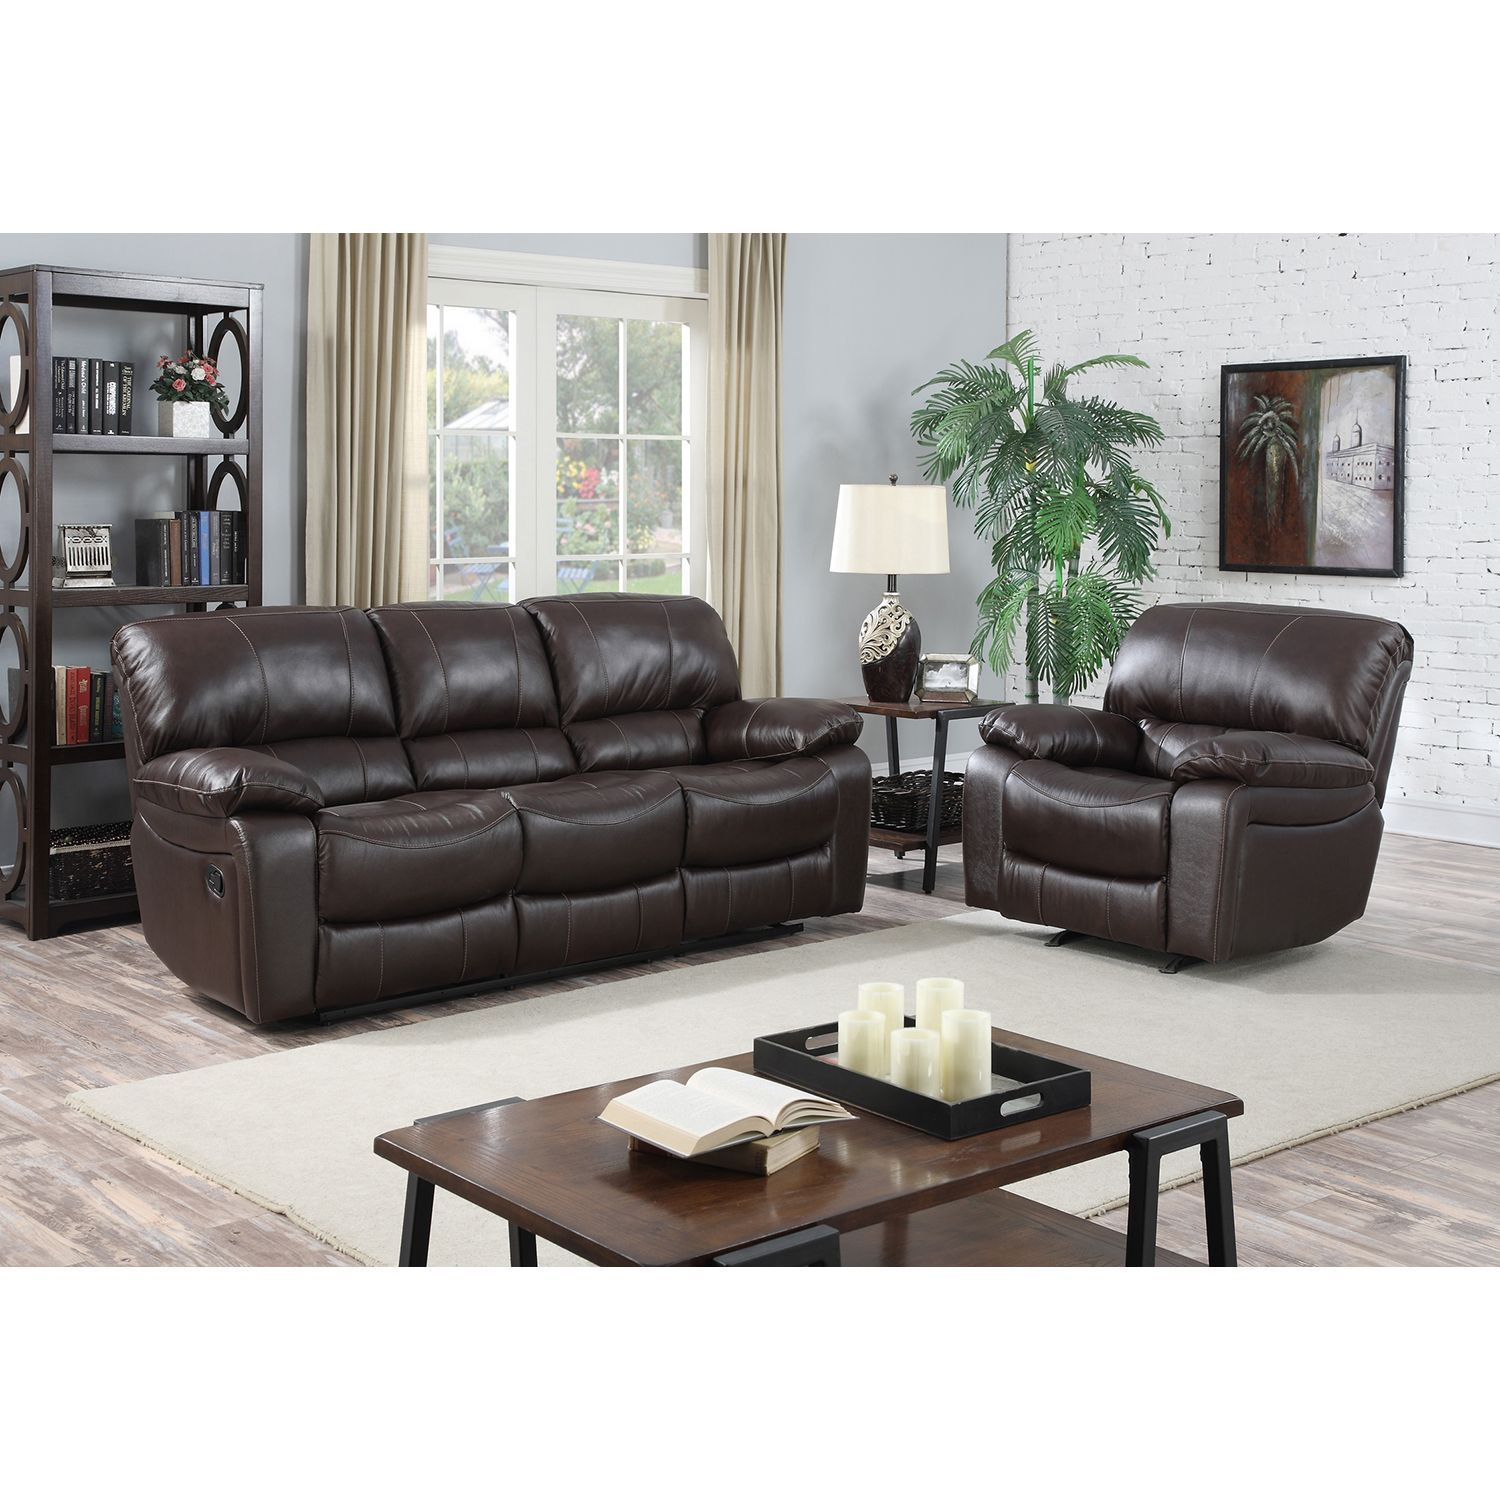 leather sofa sams club sofas diseno italiano madrid warm montclair top